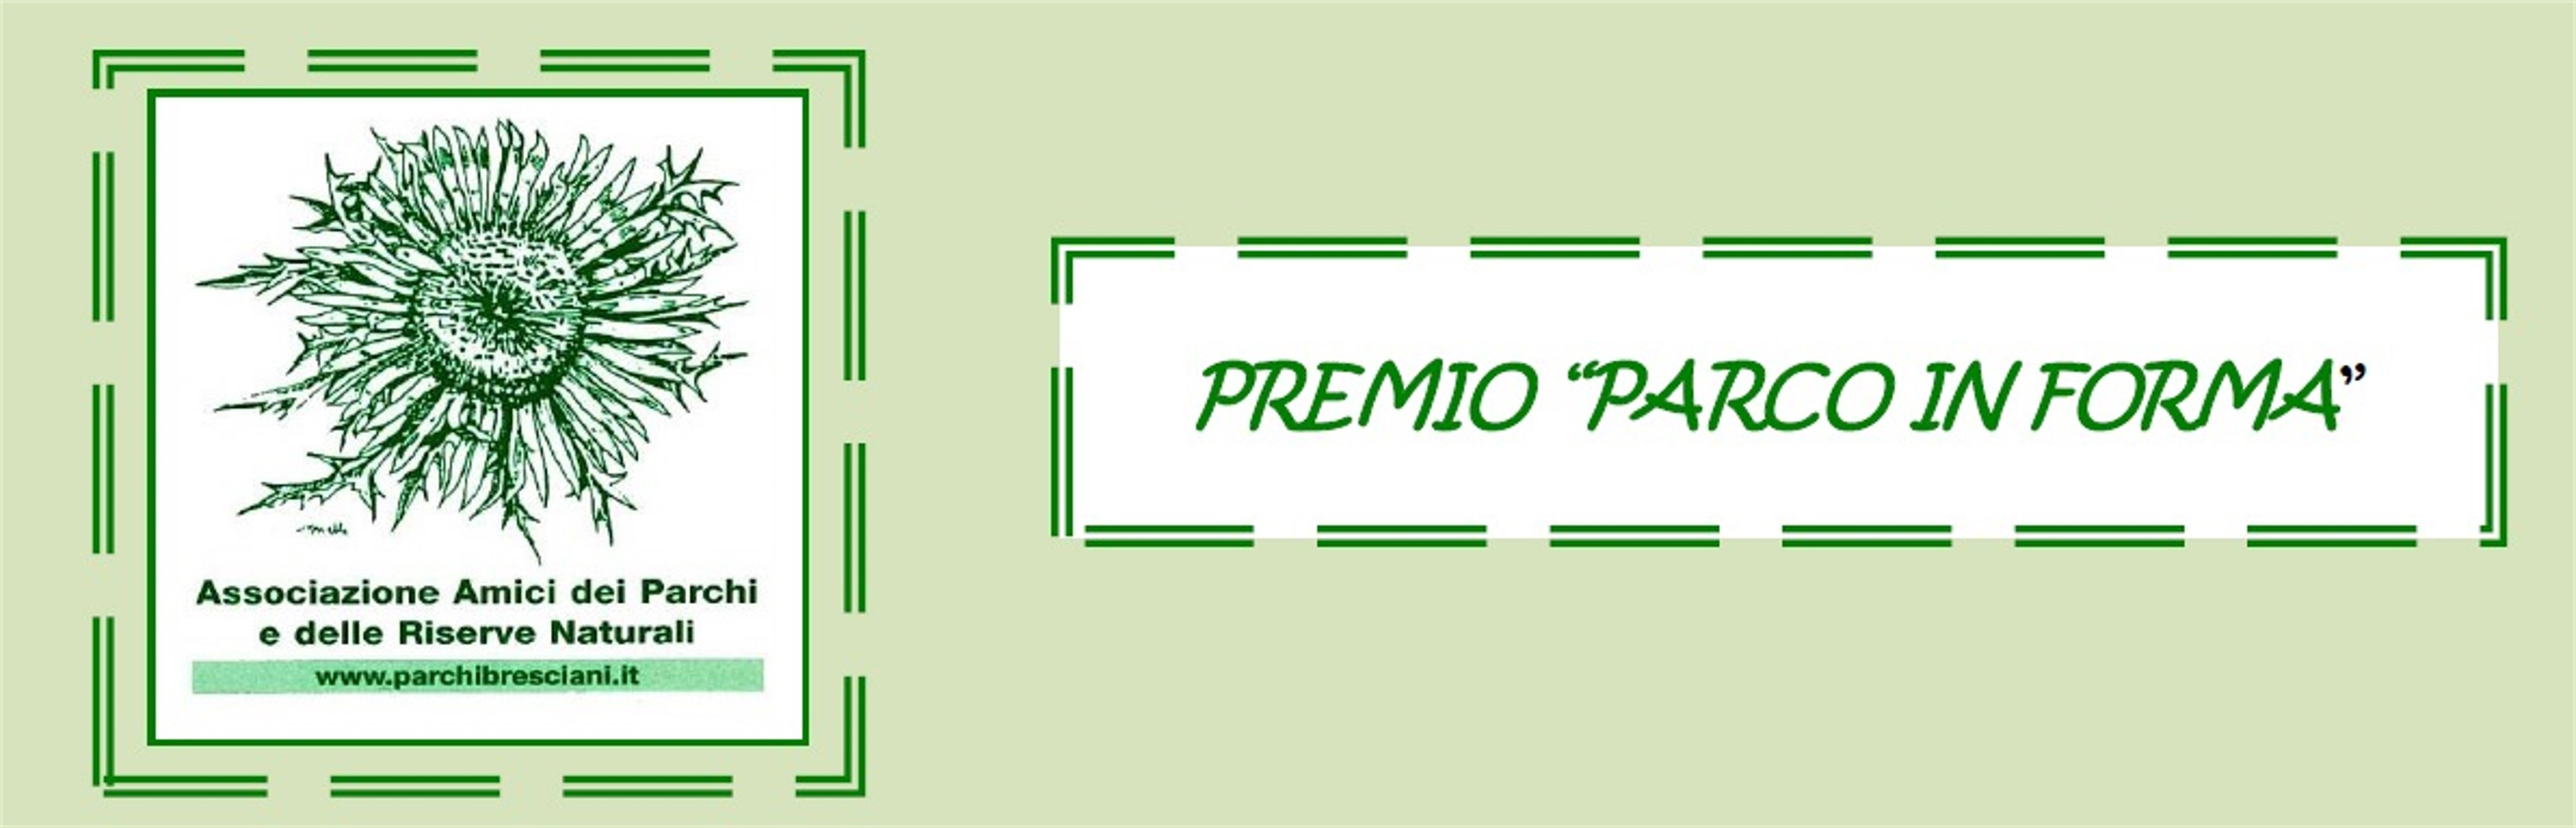 parco-in-forma